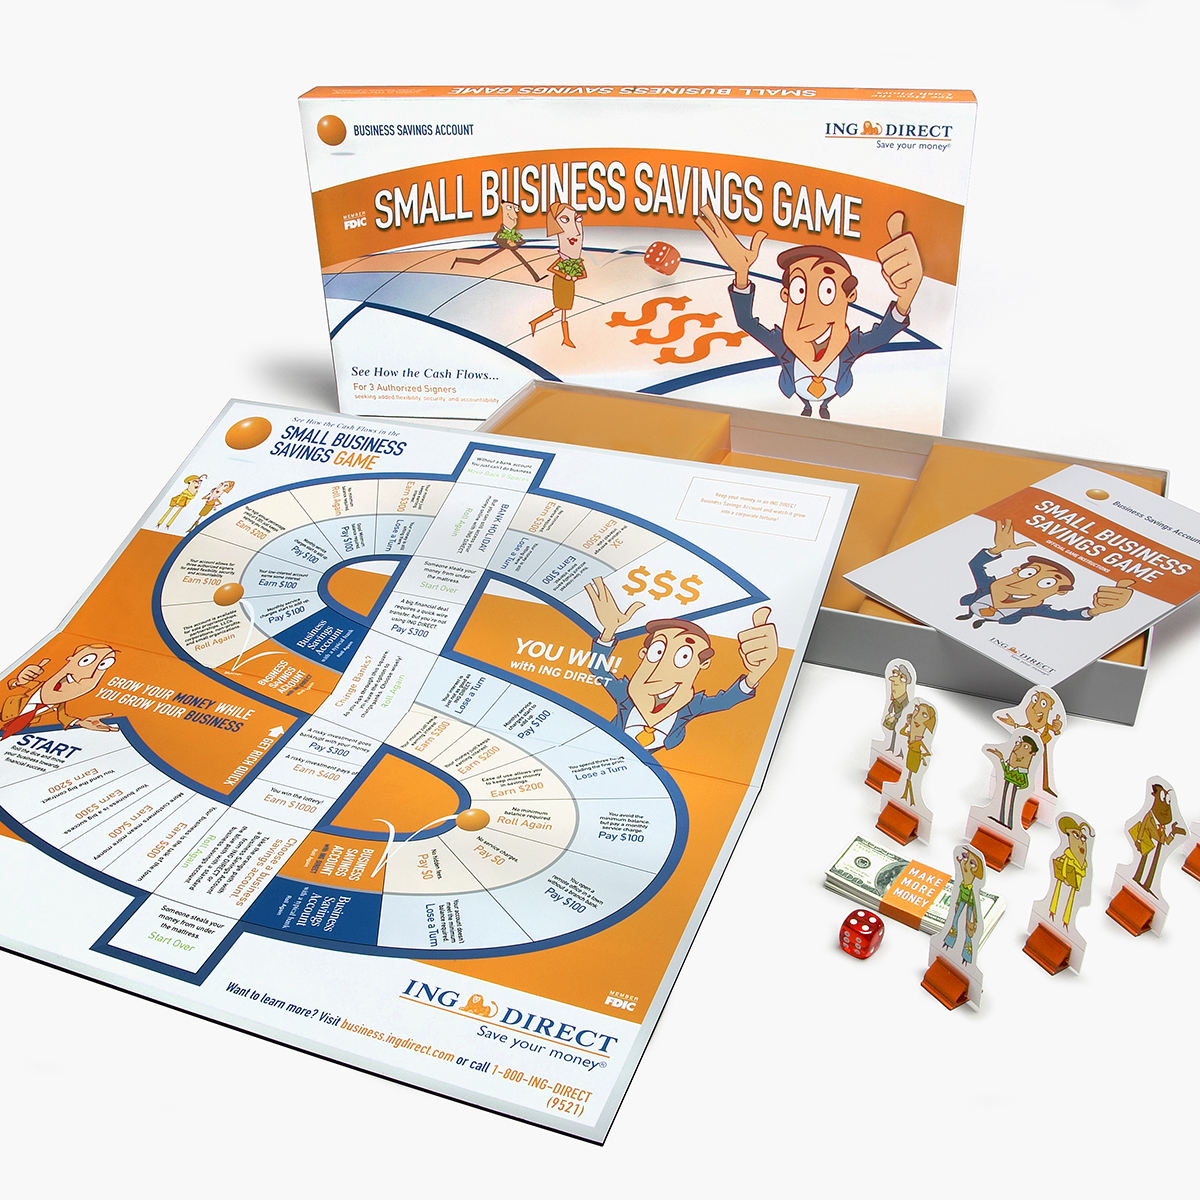 ING Direct Small Business Savings Game